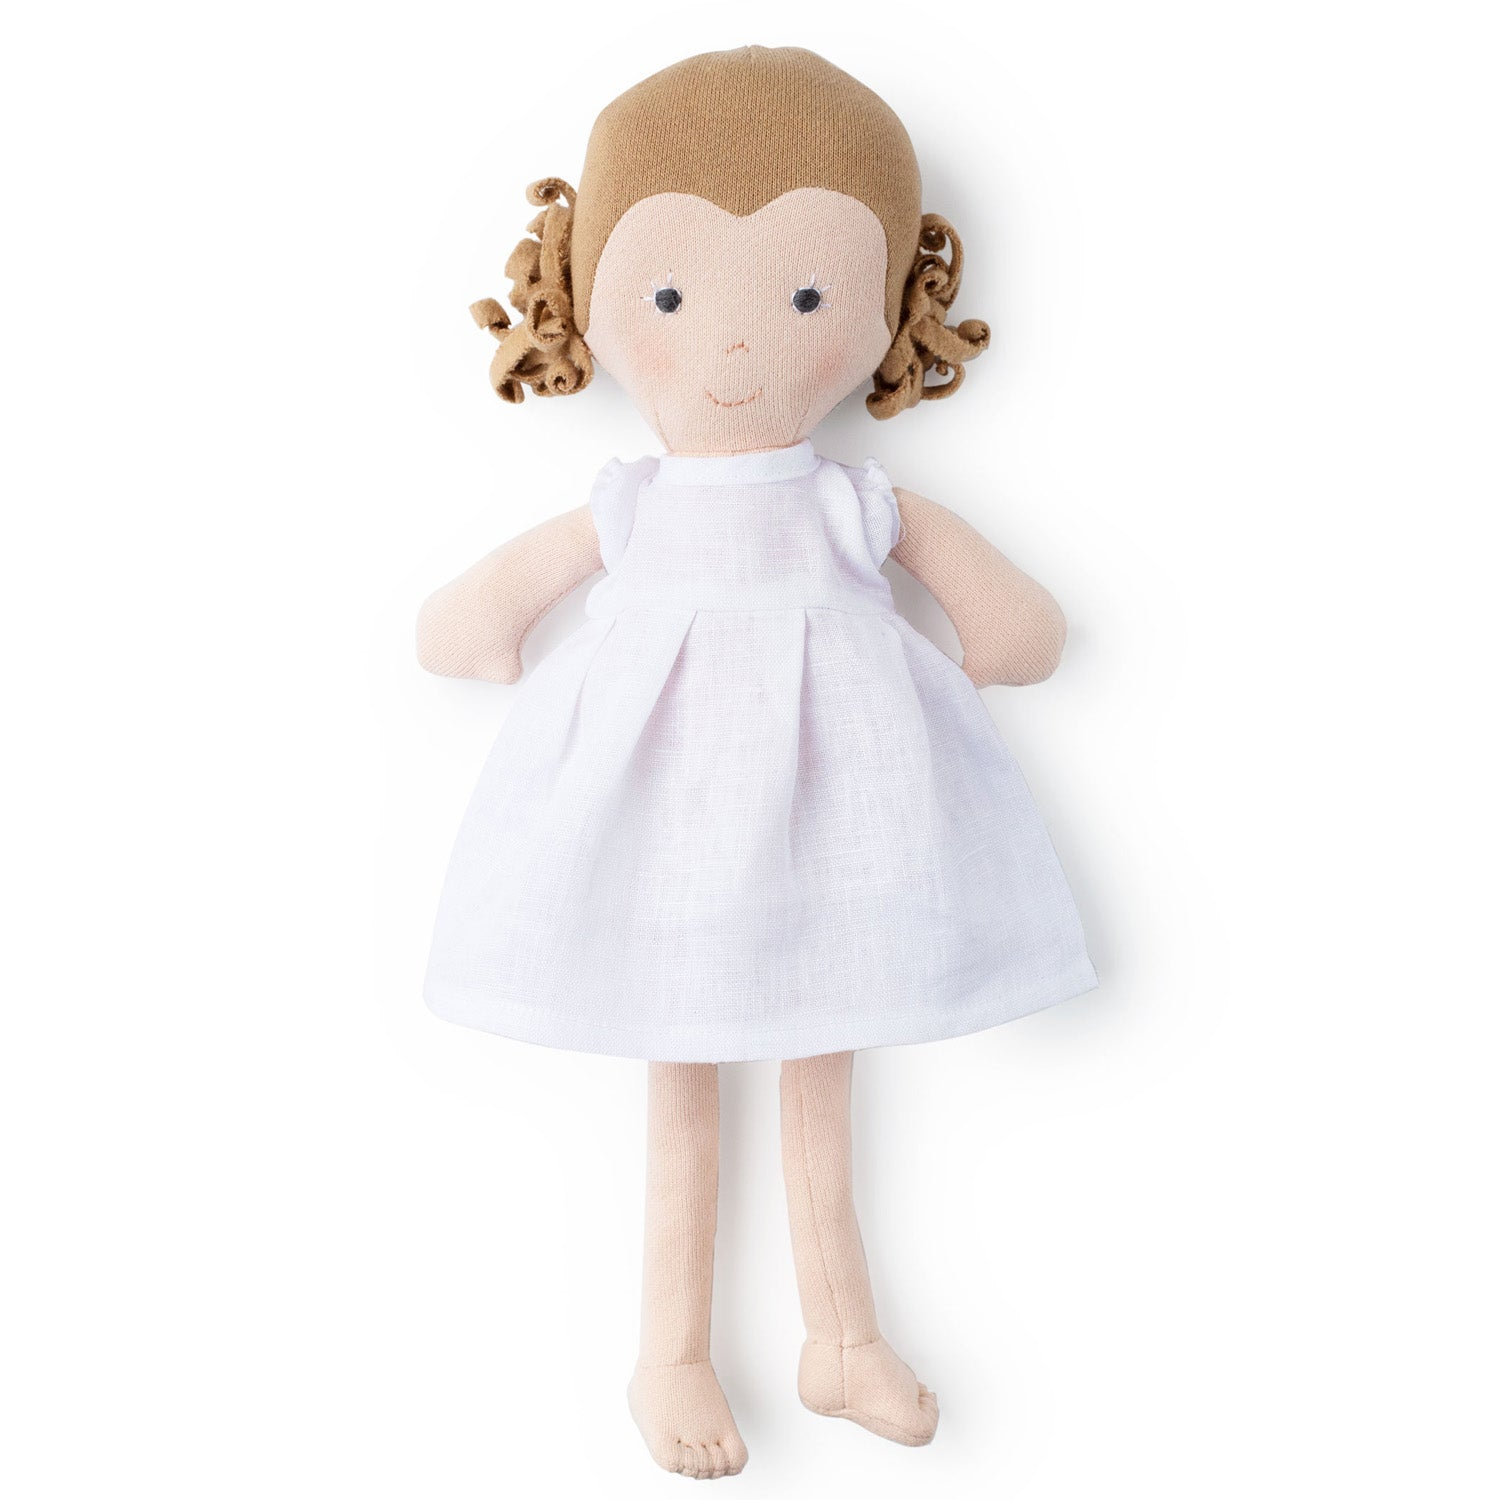 Hazel Village Organic Fern Doll in Snowy White Linen Dress